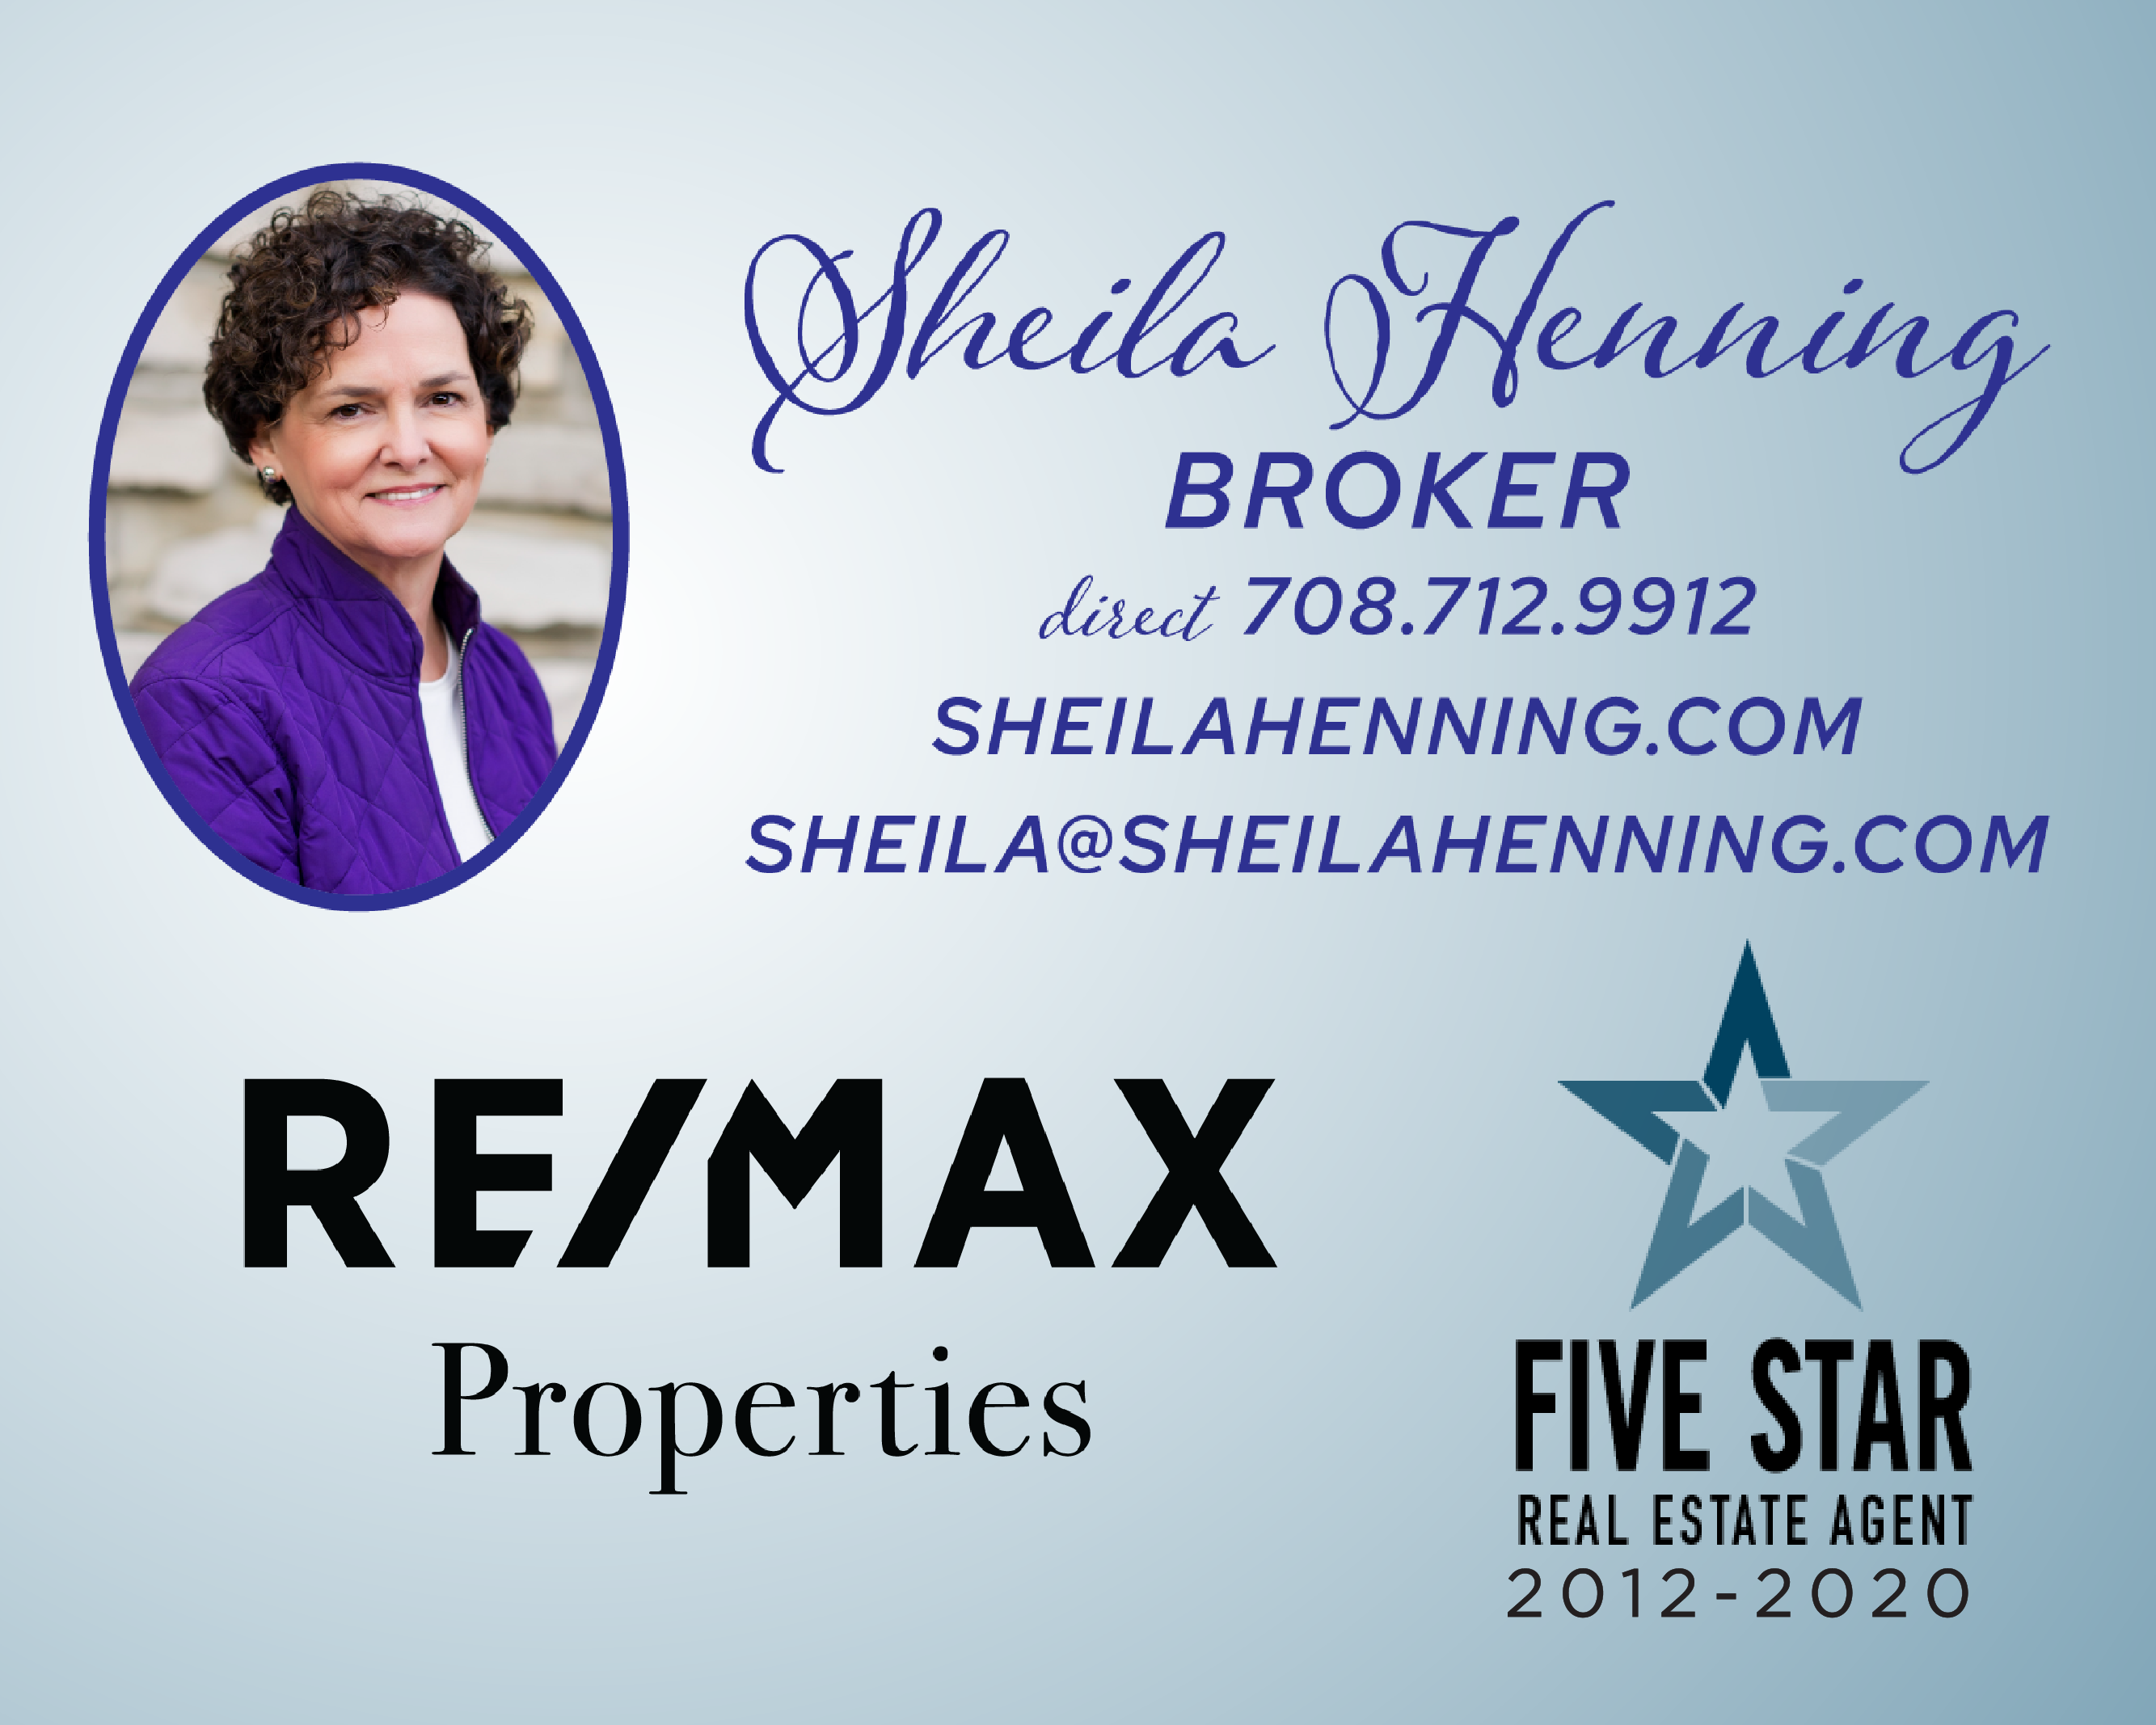 Re/Max Properties, RE/MAX, Sheila Henning, Real Estate